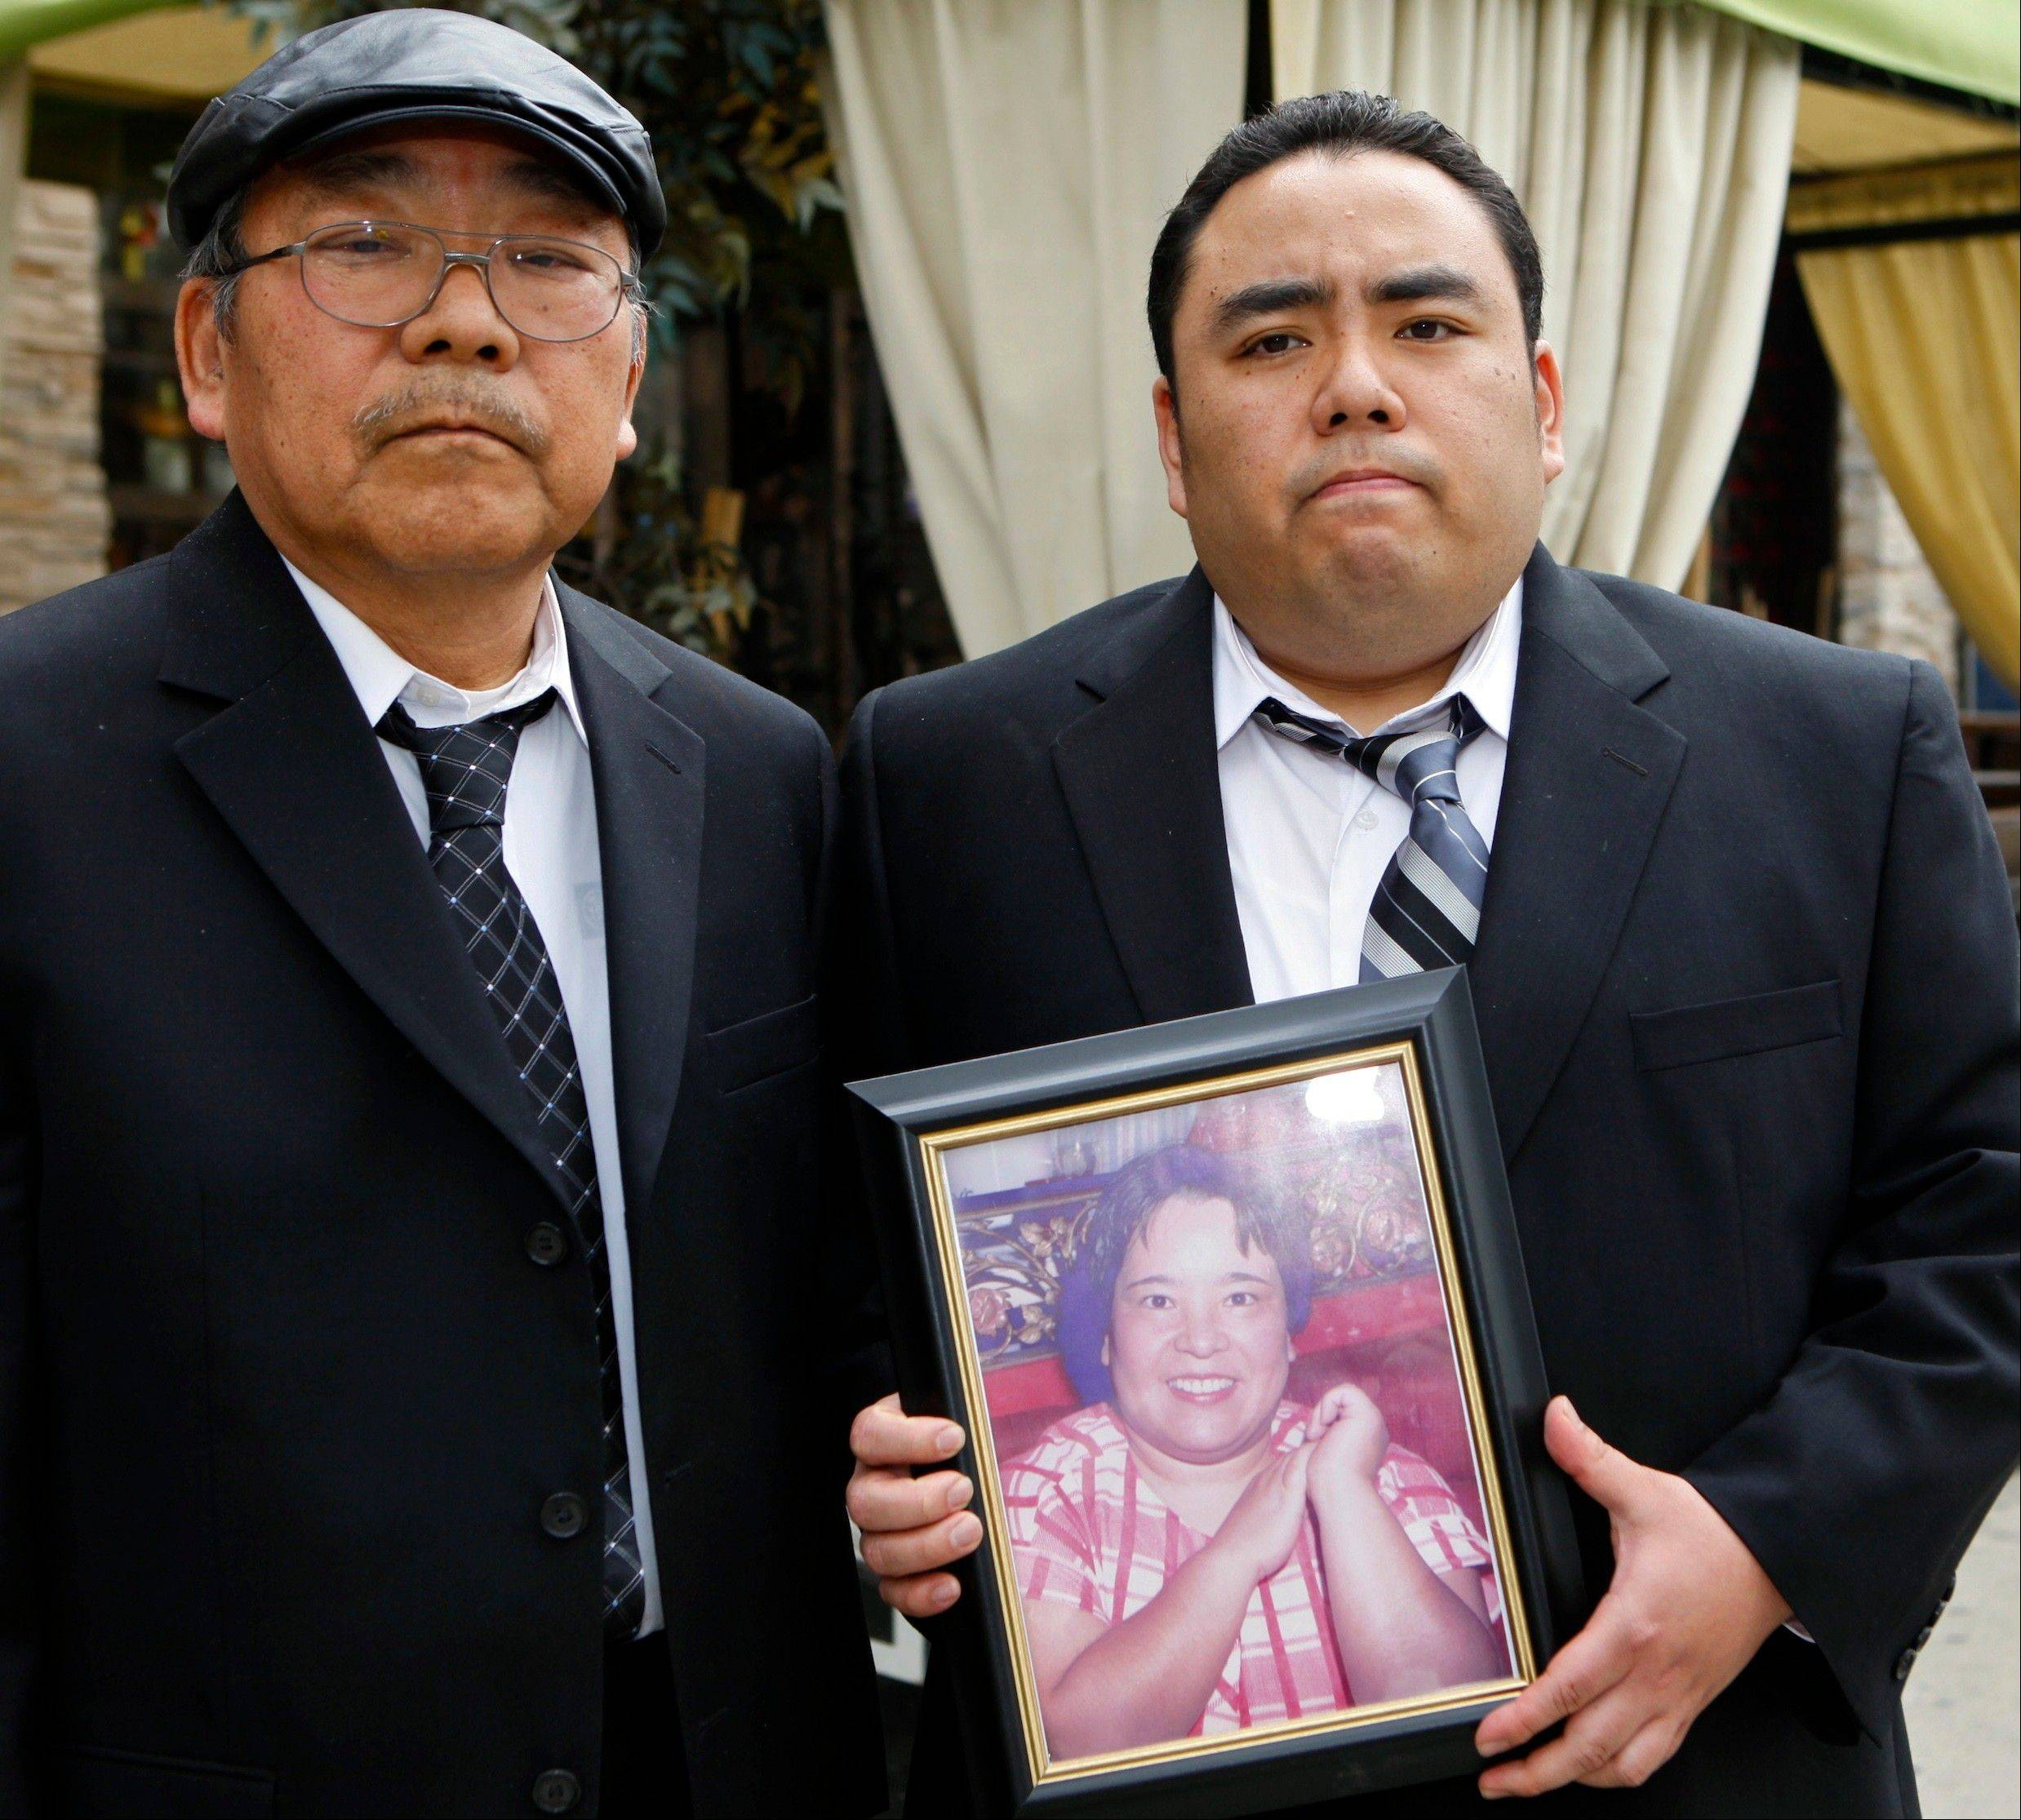 Jeffrey Uno, right, and his father, Peter Uno, the son and husband of Noriko Uno, in framed photo, who died in an alleged �sudden unintended acceleration� crash in a Toyota Camry in August 2009, in Los Angeles.